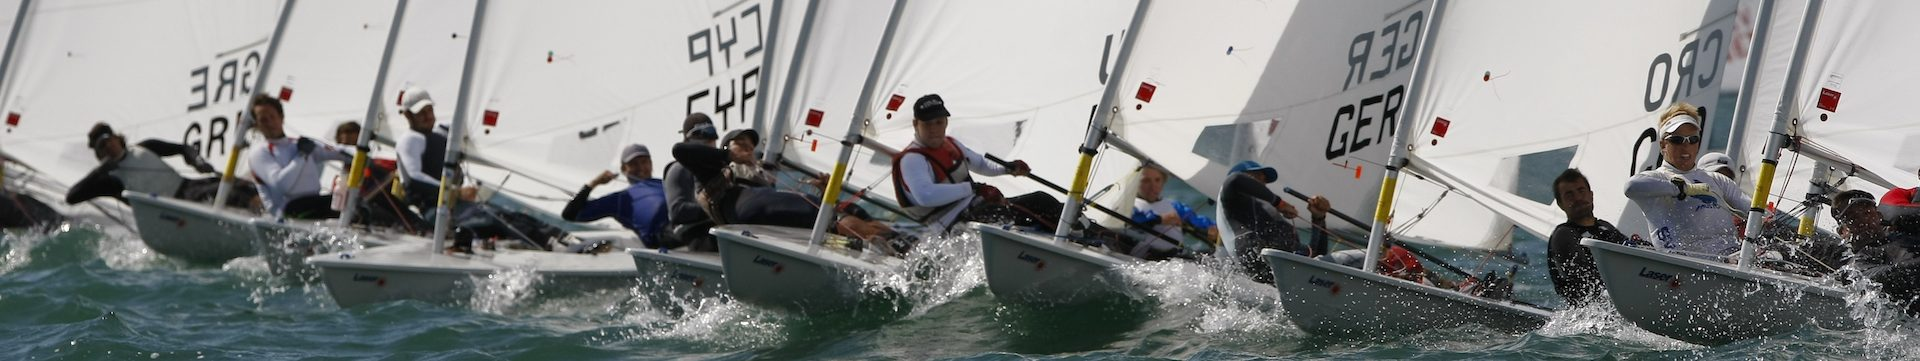 2019 ILCA Radial Youth World Championships